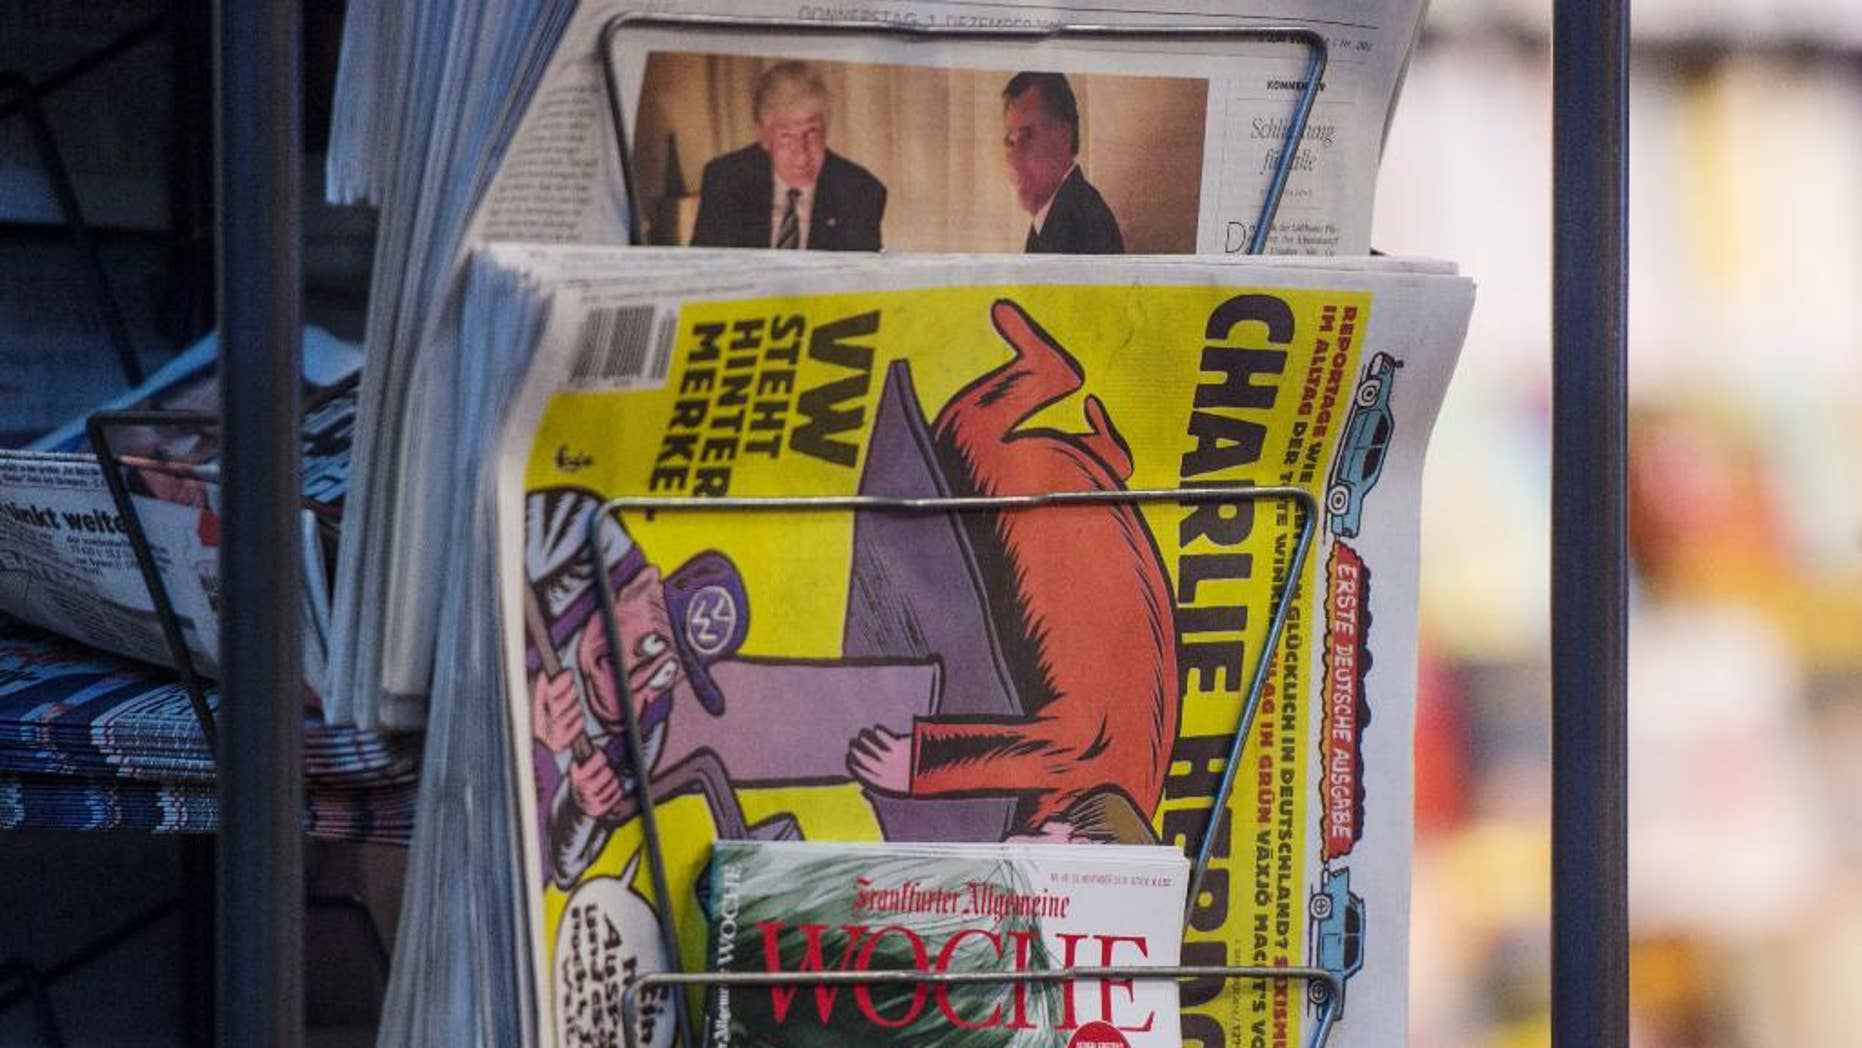 Copies of the French satirical magazine Charlie Hebdo sit at a newsagent's in Stuttgart, Germany, Thursday, Dec. 1, 2016.  The first German edition went on sale on Thursday morning. (Lino Mirgeler/dpa via AP)